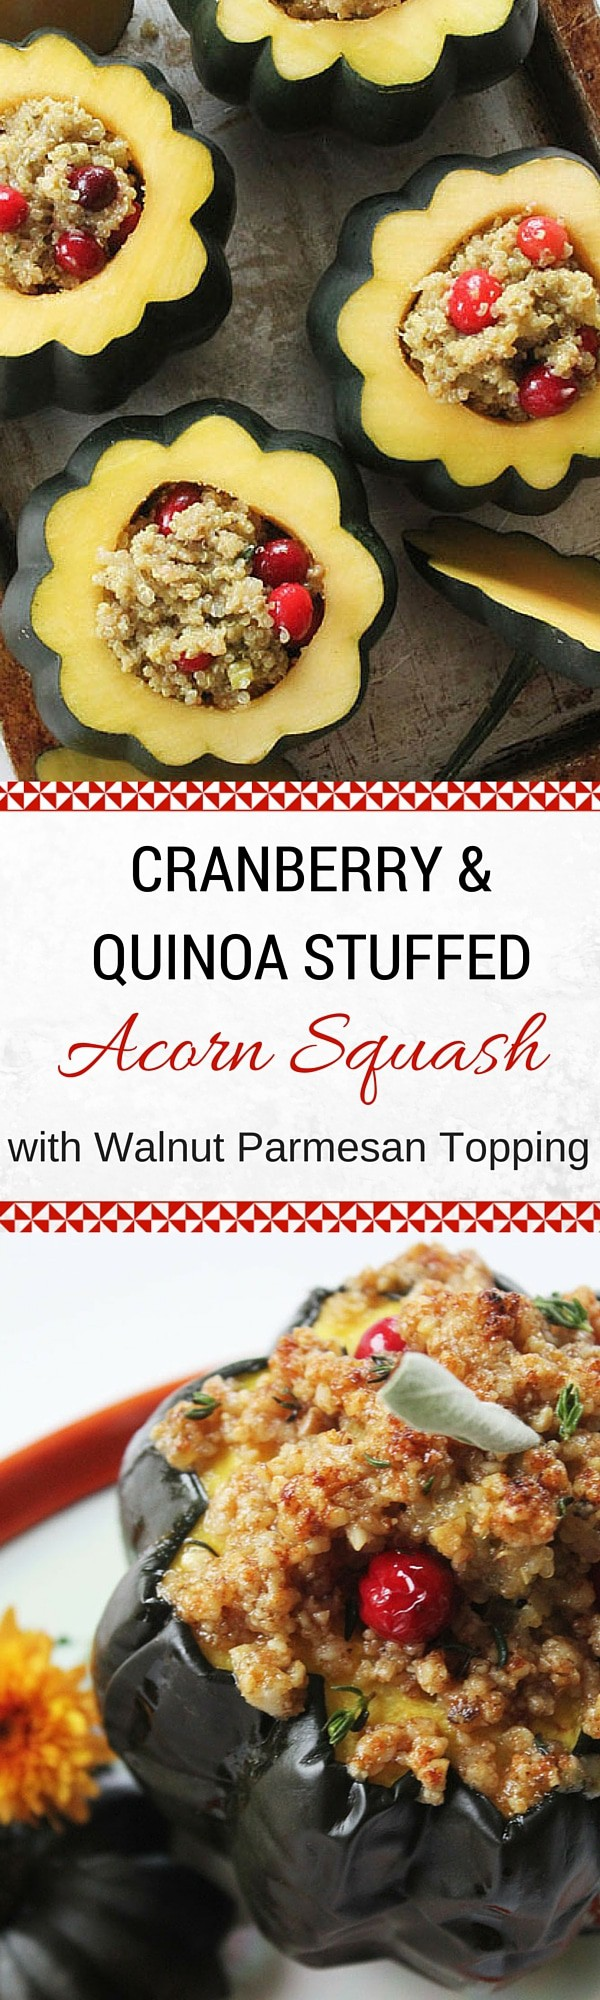 Cranberry & Quinoa Stuffed Acorn Squash with Walnut Parmesan Topping